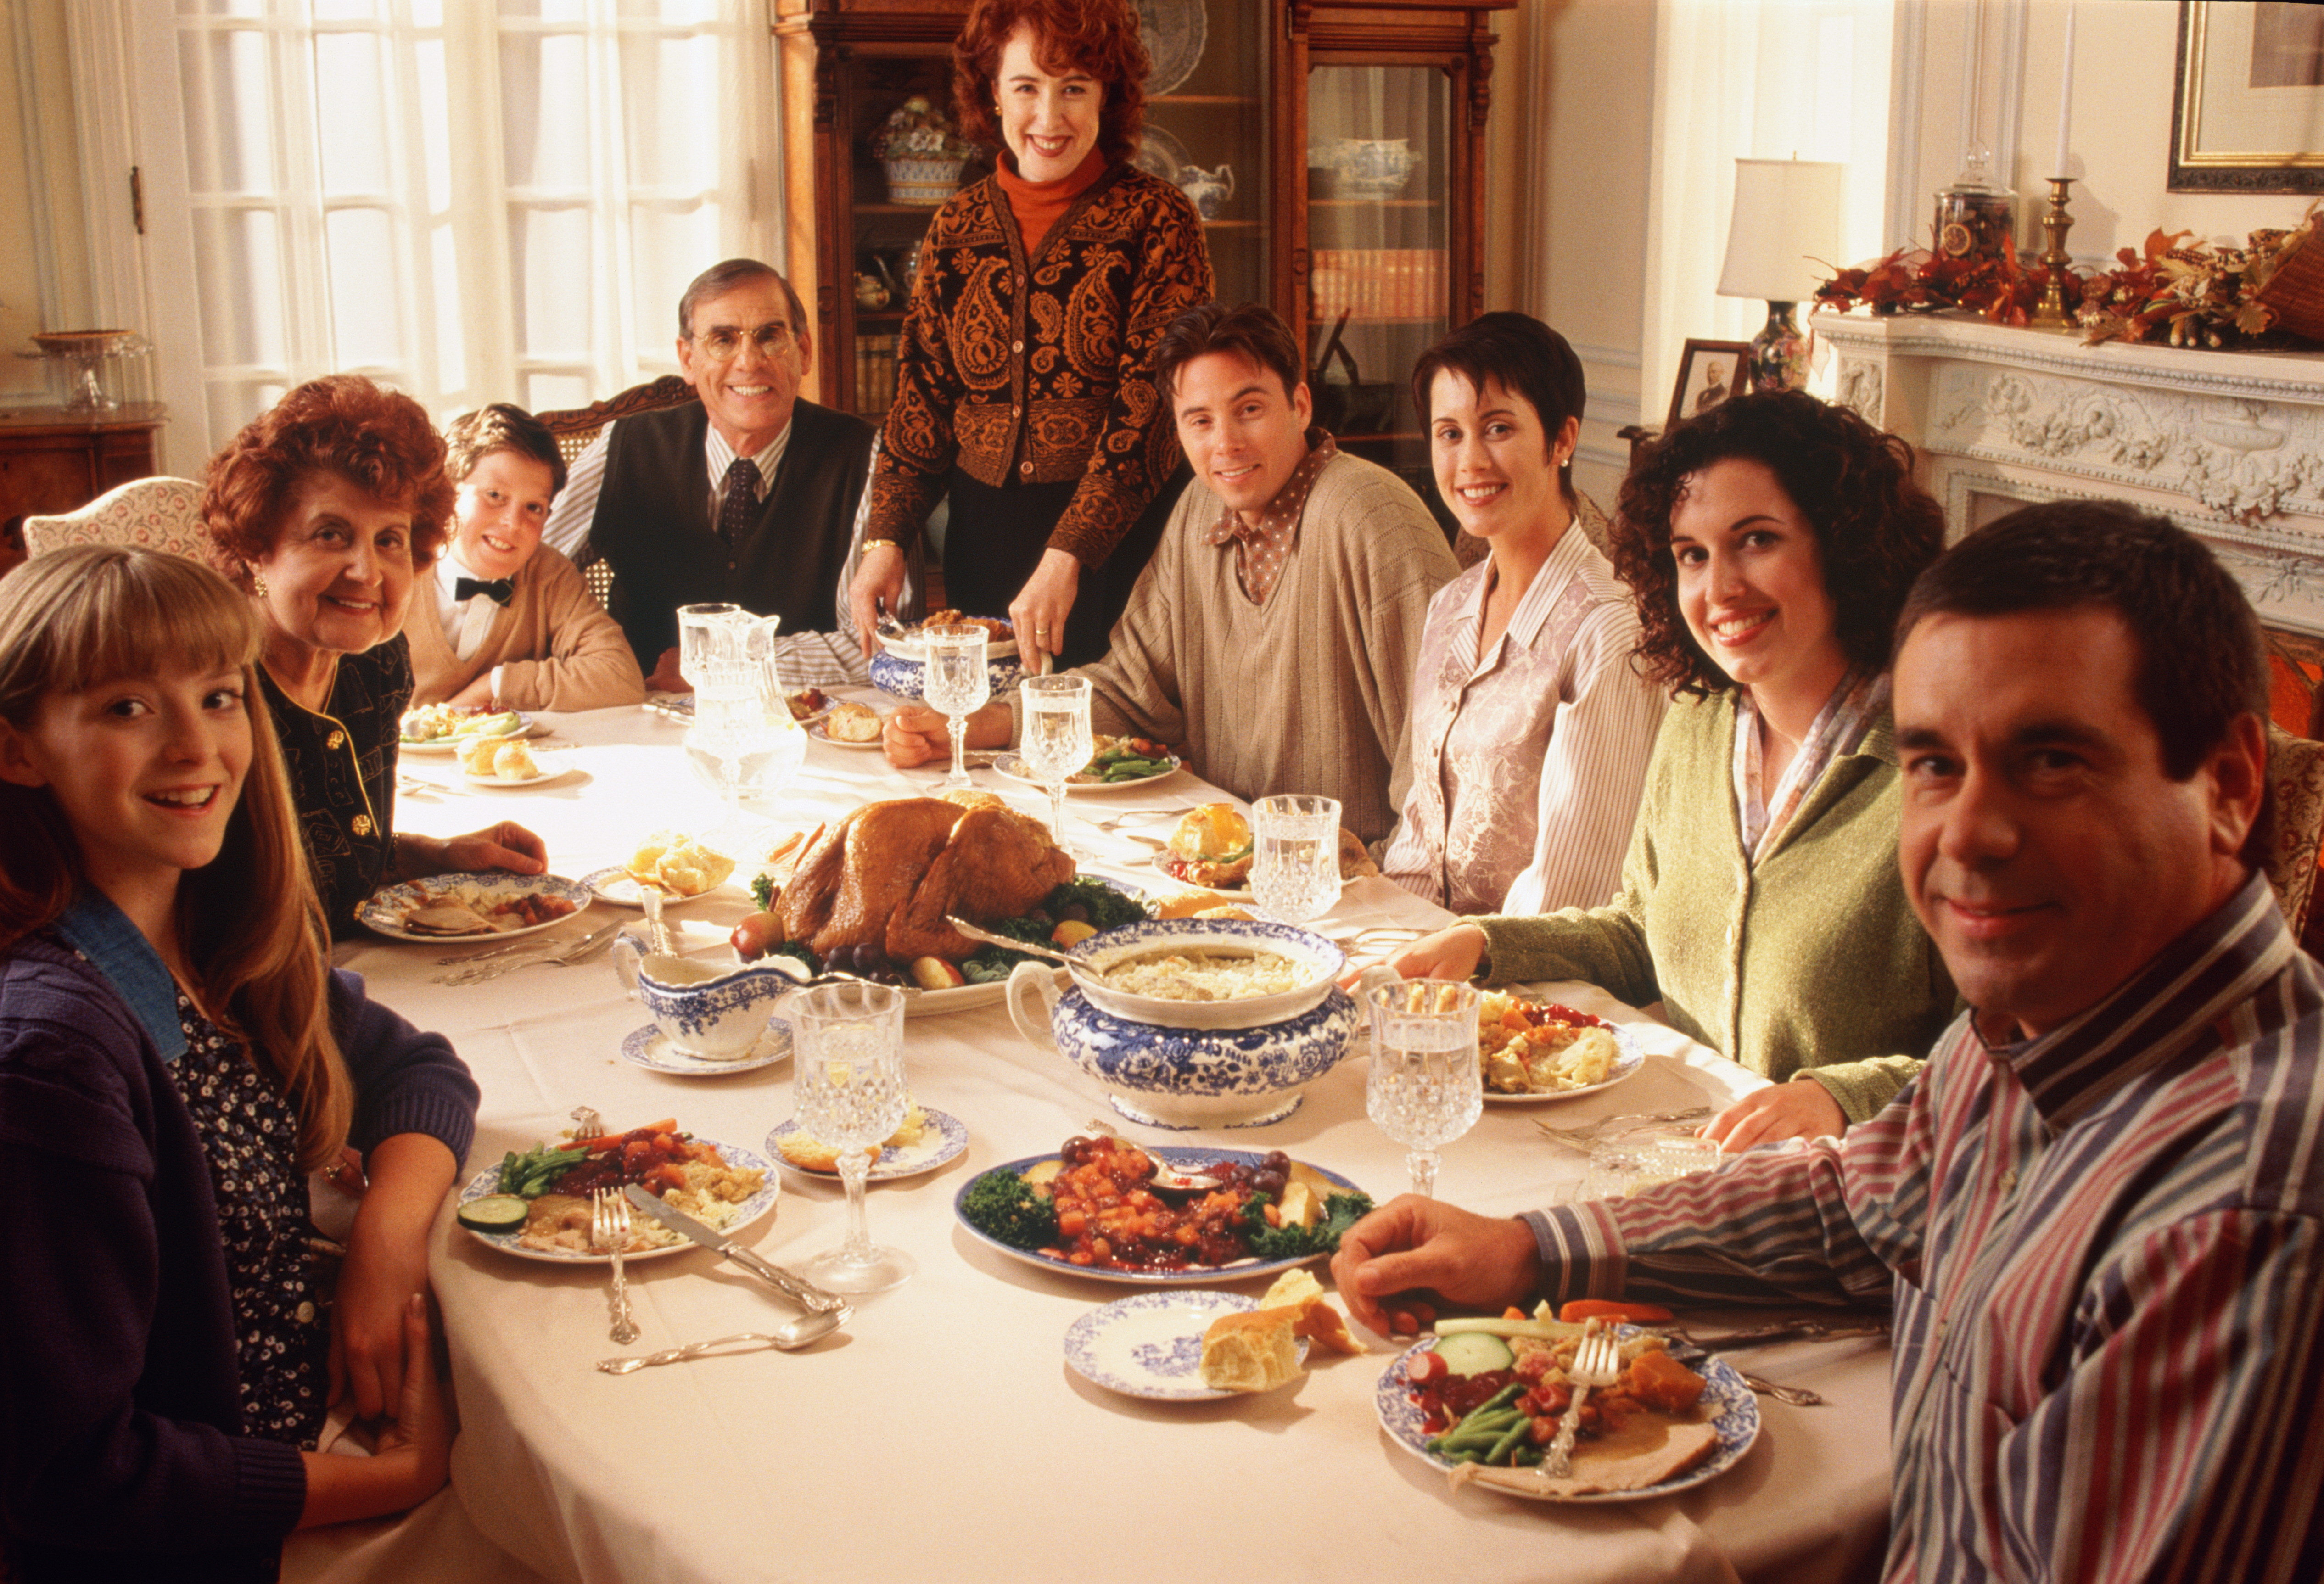 Thanksgiving Family Dinner  Thanksgiving Survival Guide 8 Gad s to Keep the Family